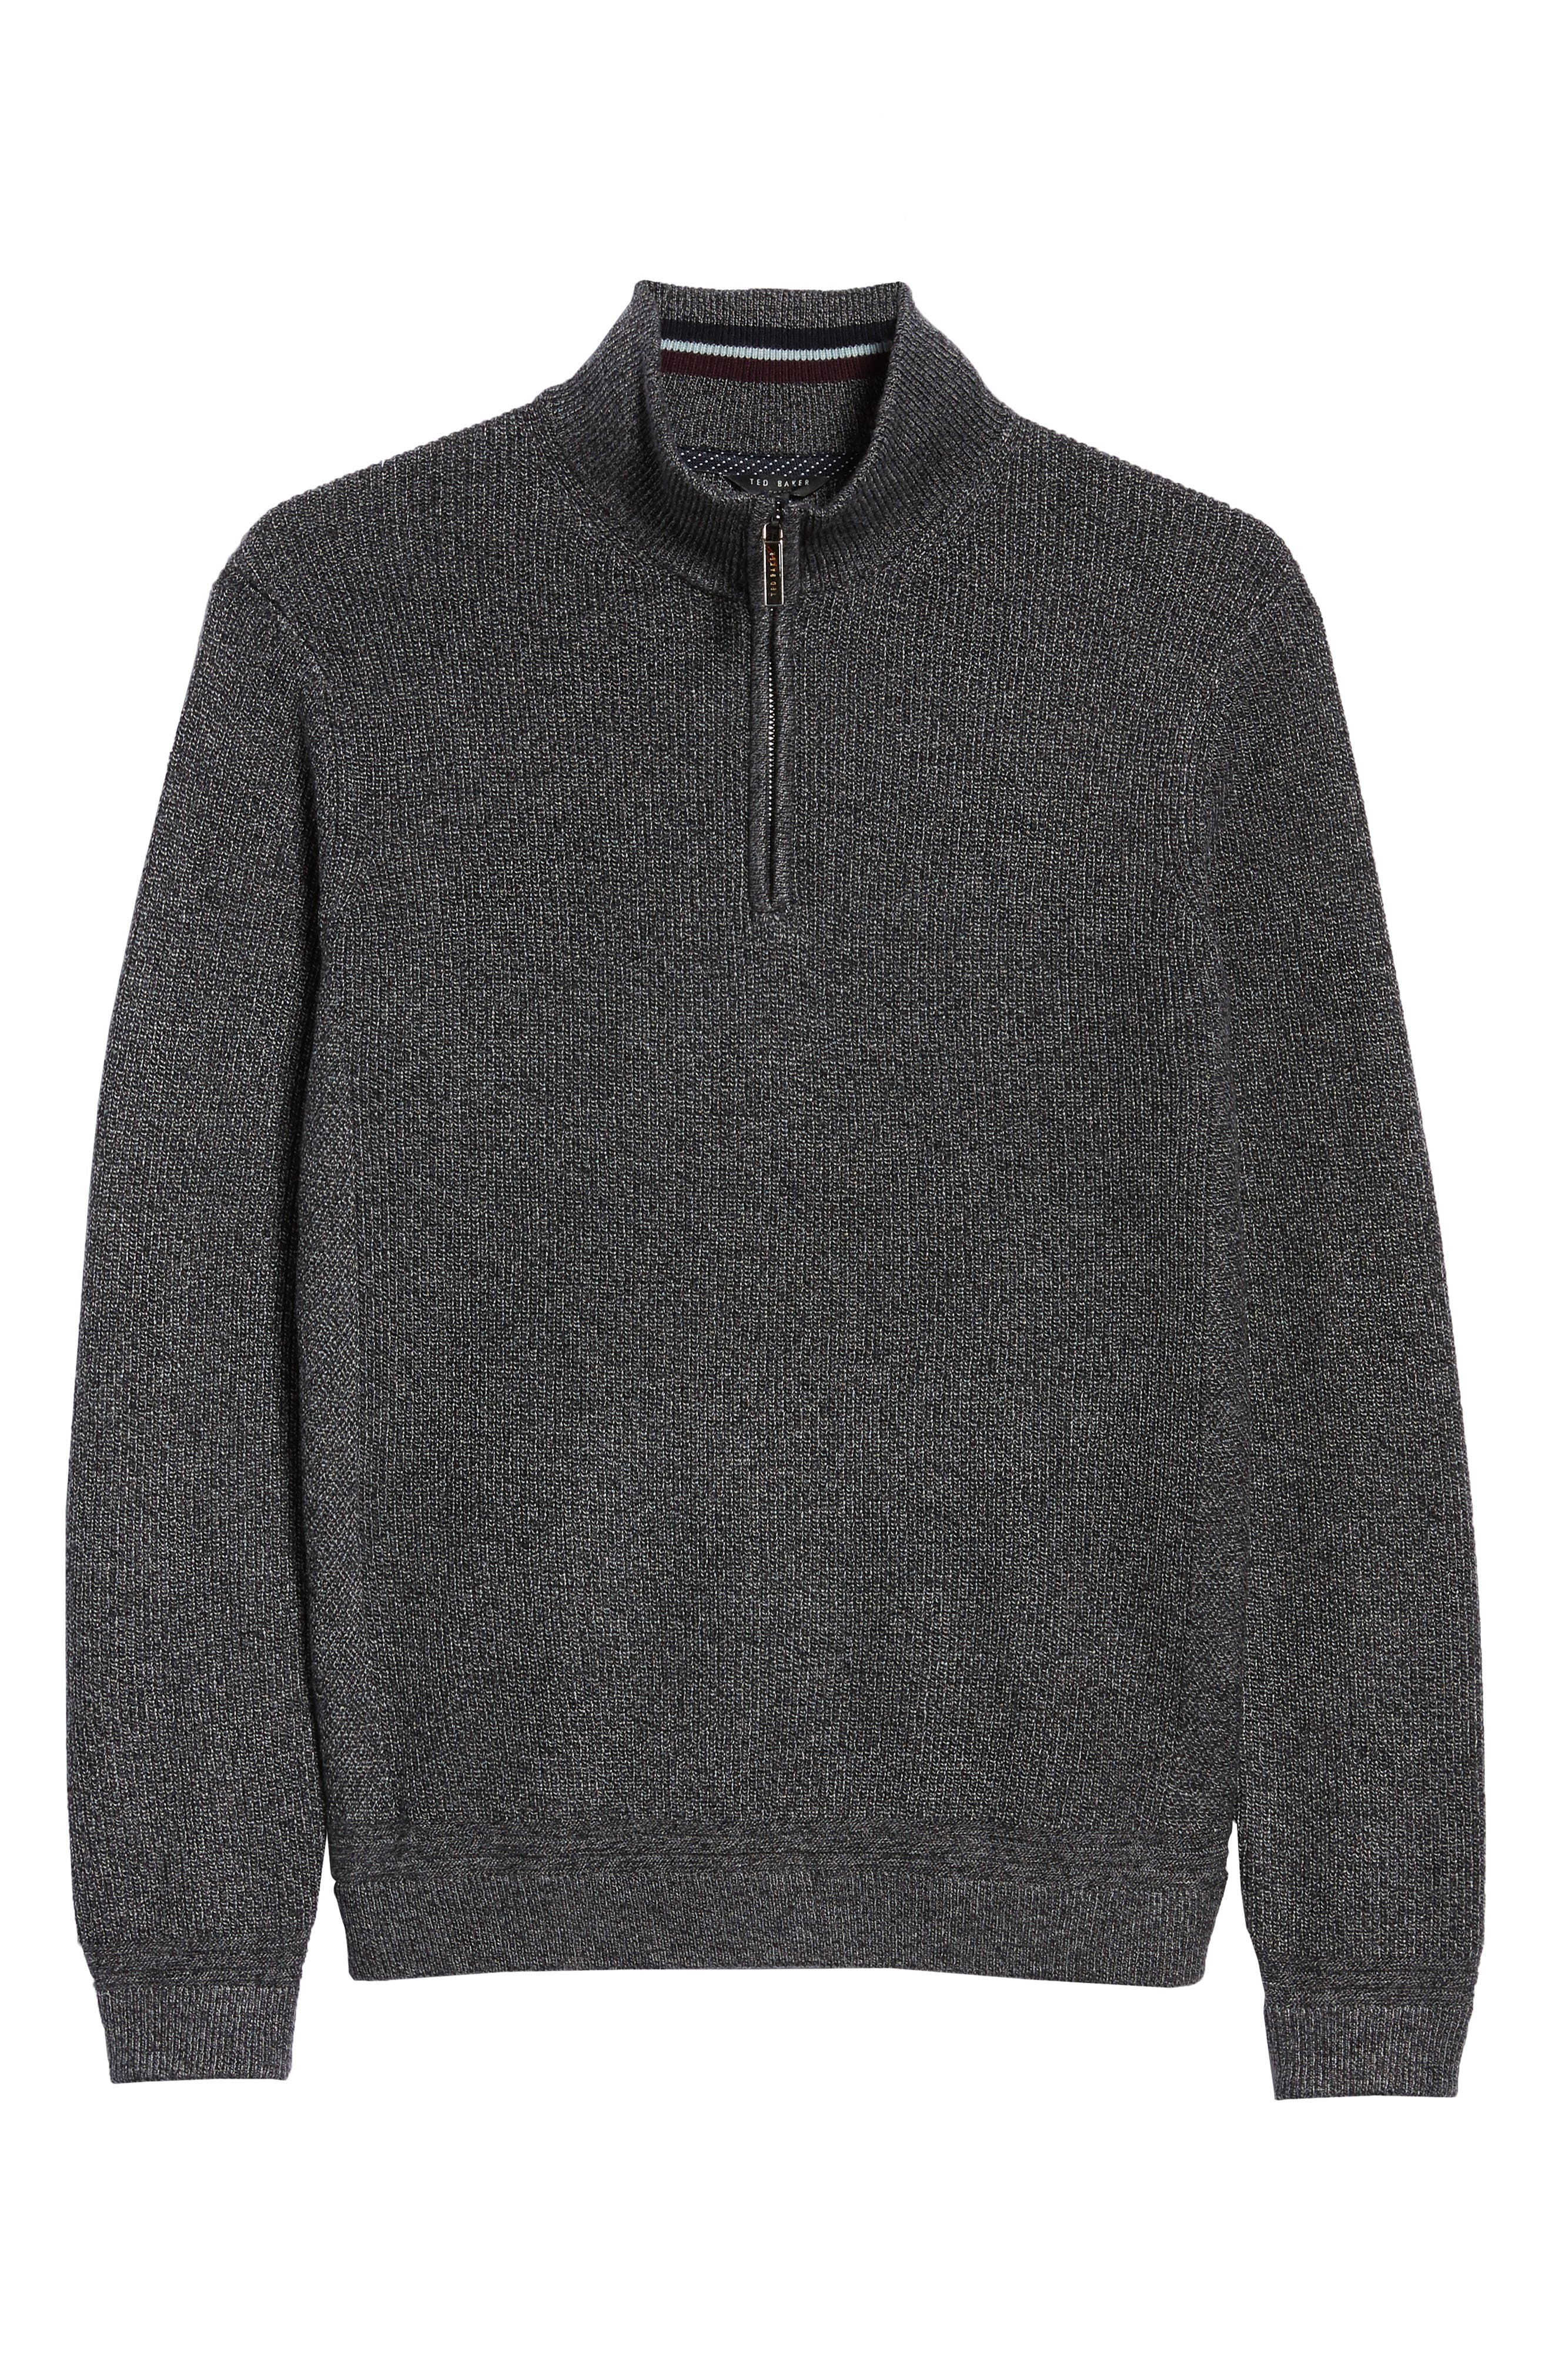 Lohas Slim Fit Funnel Neck Sweater,                             Alternate thumbnail 6, color,                             CHARCOAL